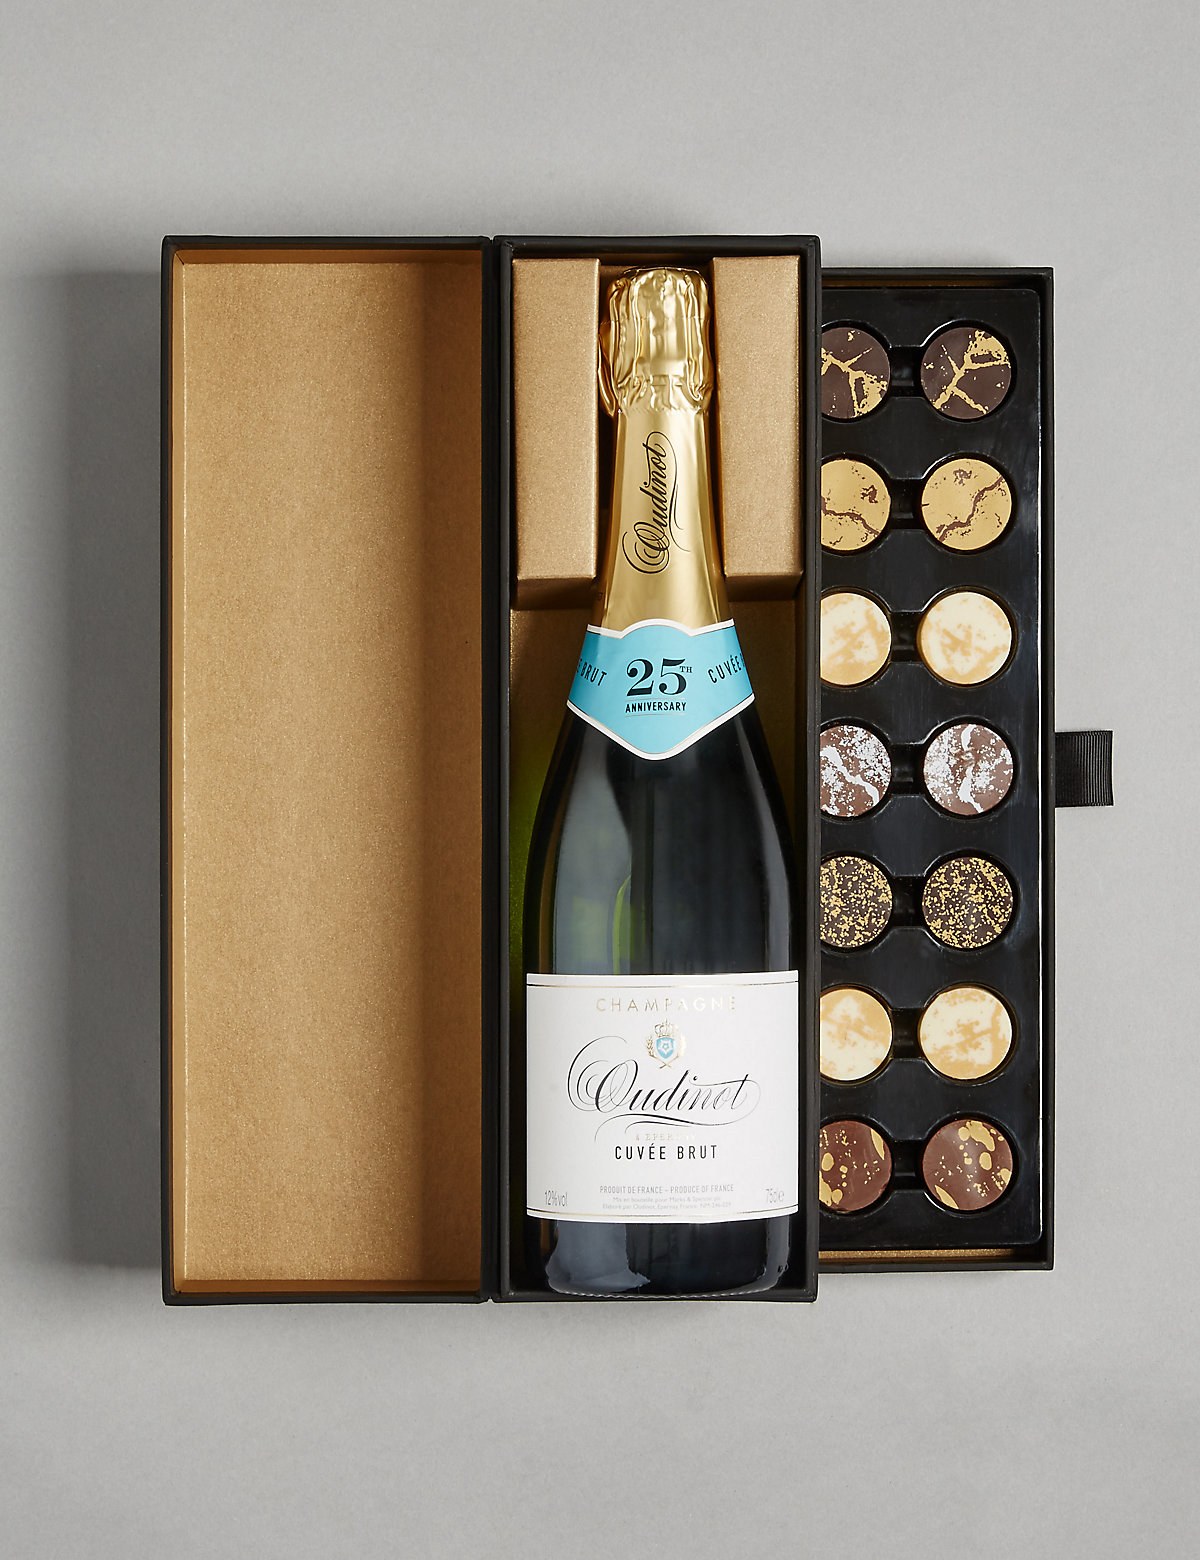 Enjoy savings on home furniture, wine and luxury food with Marks & Spencer discount codes! and gift products at Marks and Spencer plus buy any 2 select furniture pieces and get 20% off your order.